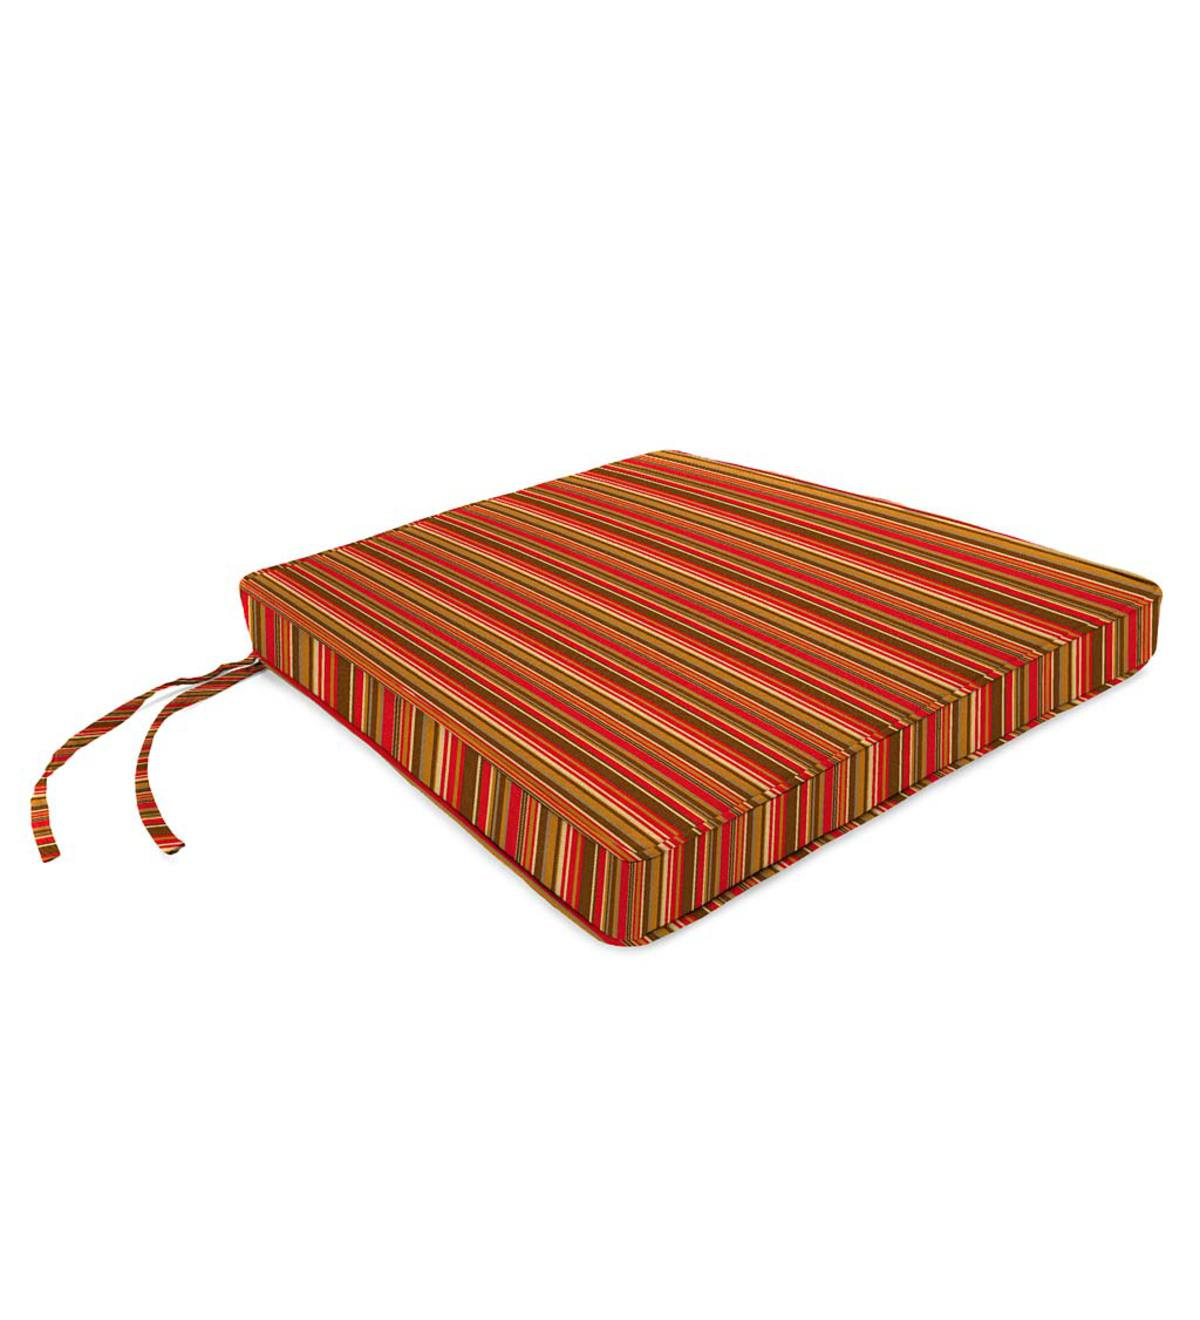 "Deluxe Sunbrella Square Cushion with ties 16"" x 16"" x 3"" - Cherry Stripe"